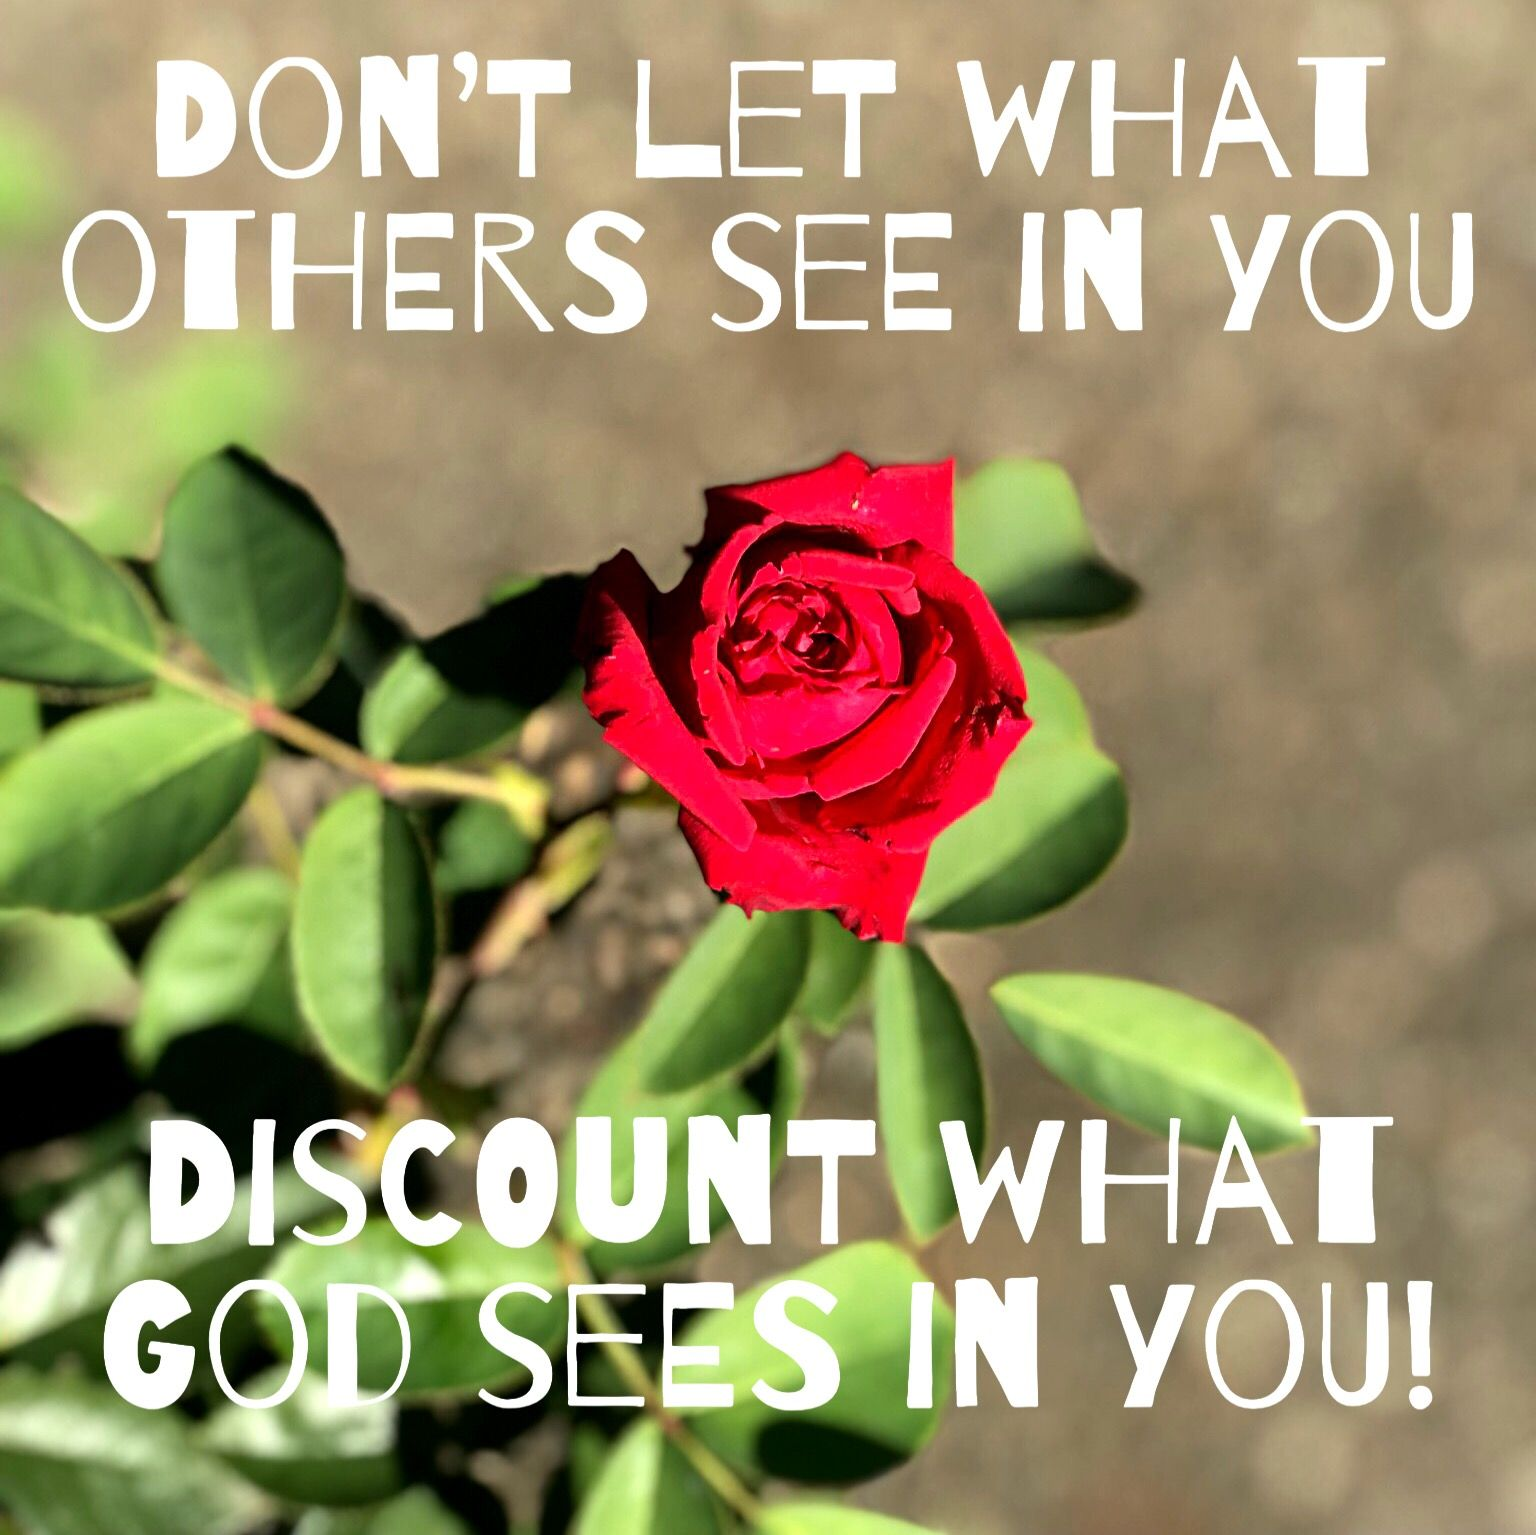 Who Does God Say You Are God Says You Are A Masterpiece Believe In Yourself How To See Yourself As God Sees You Gra God Uplifting Inspirational Sayings